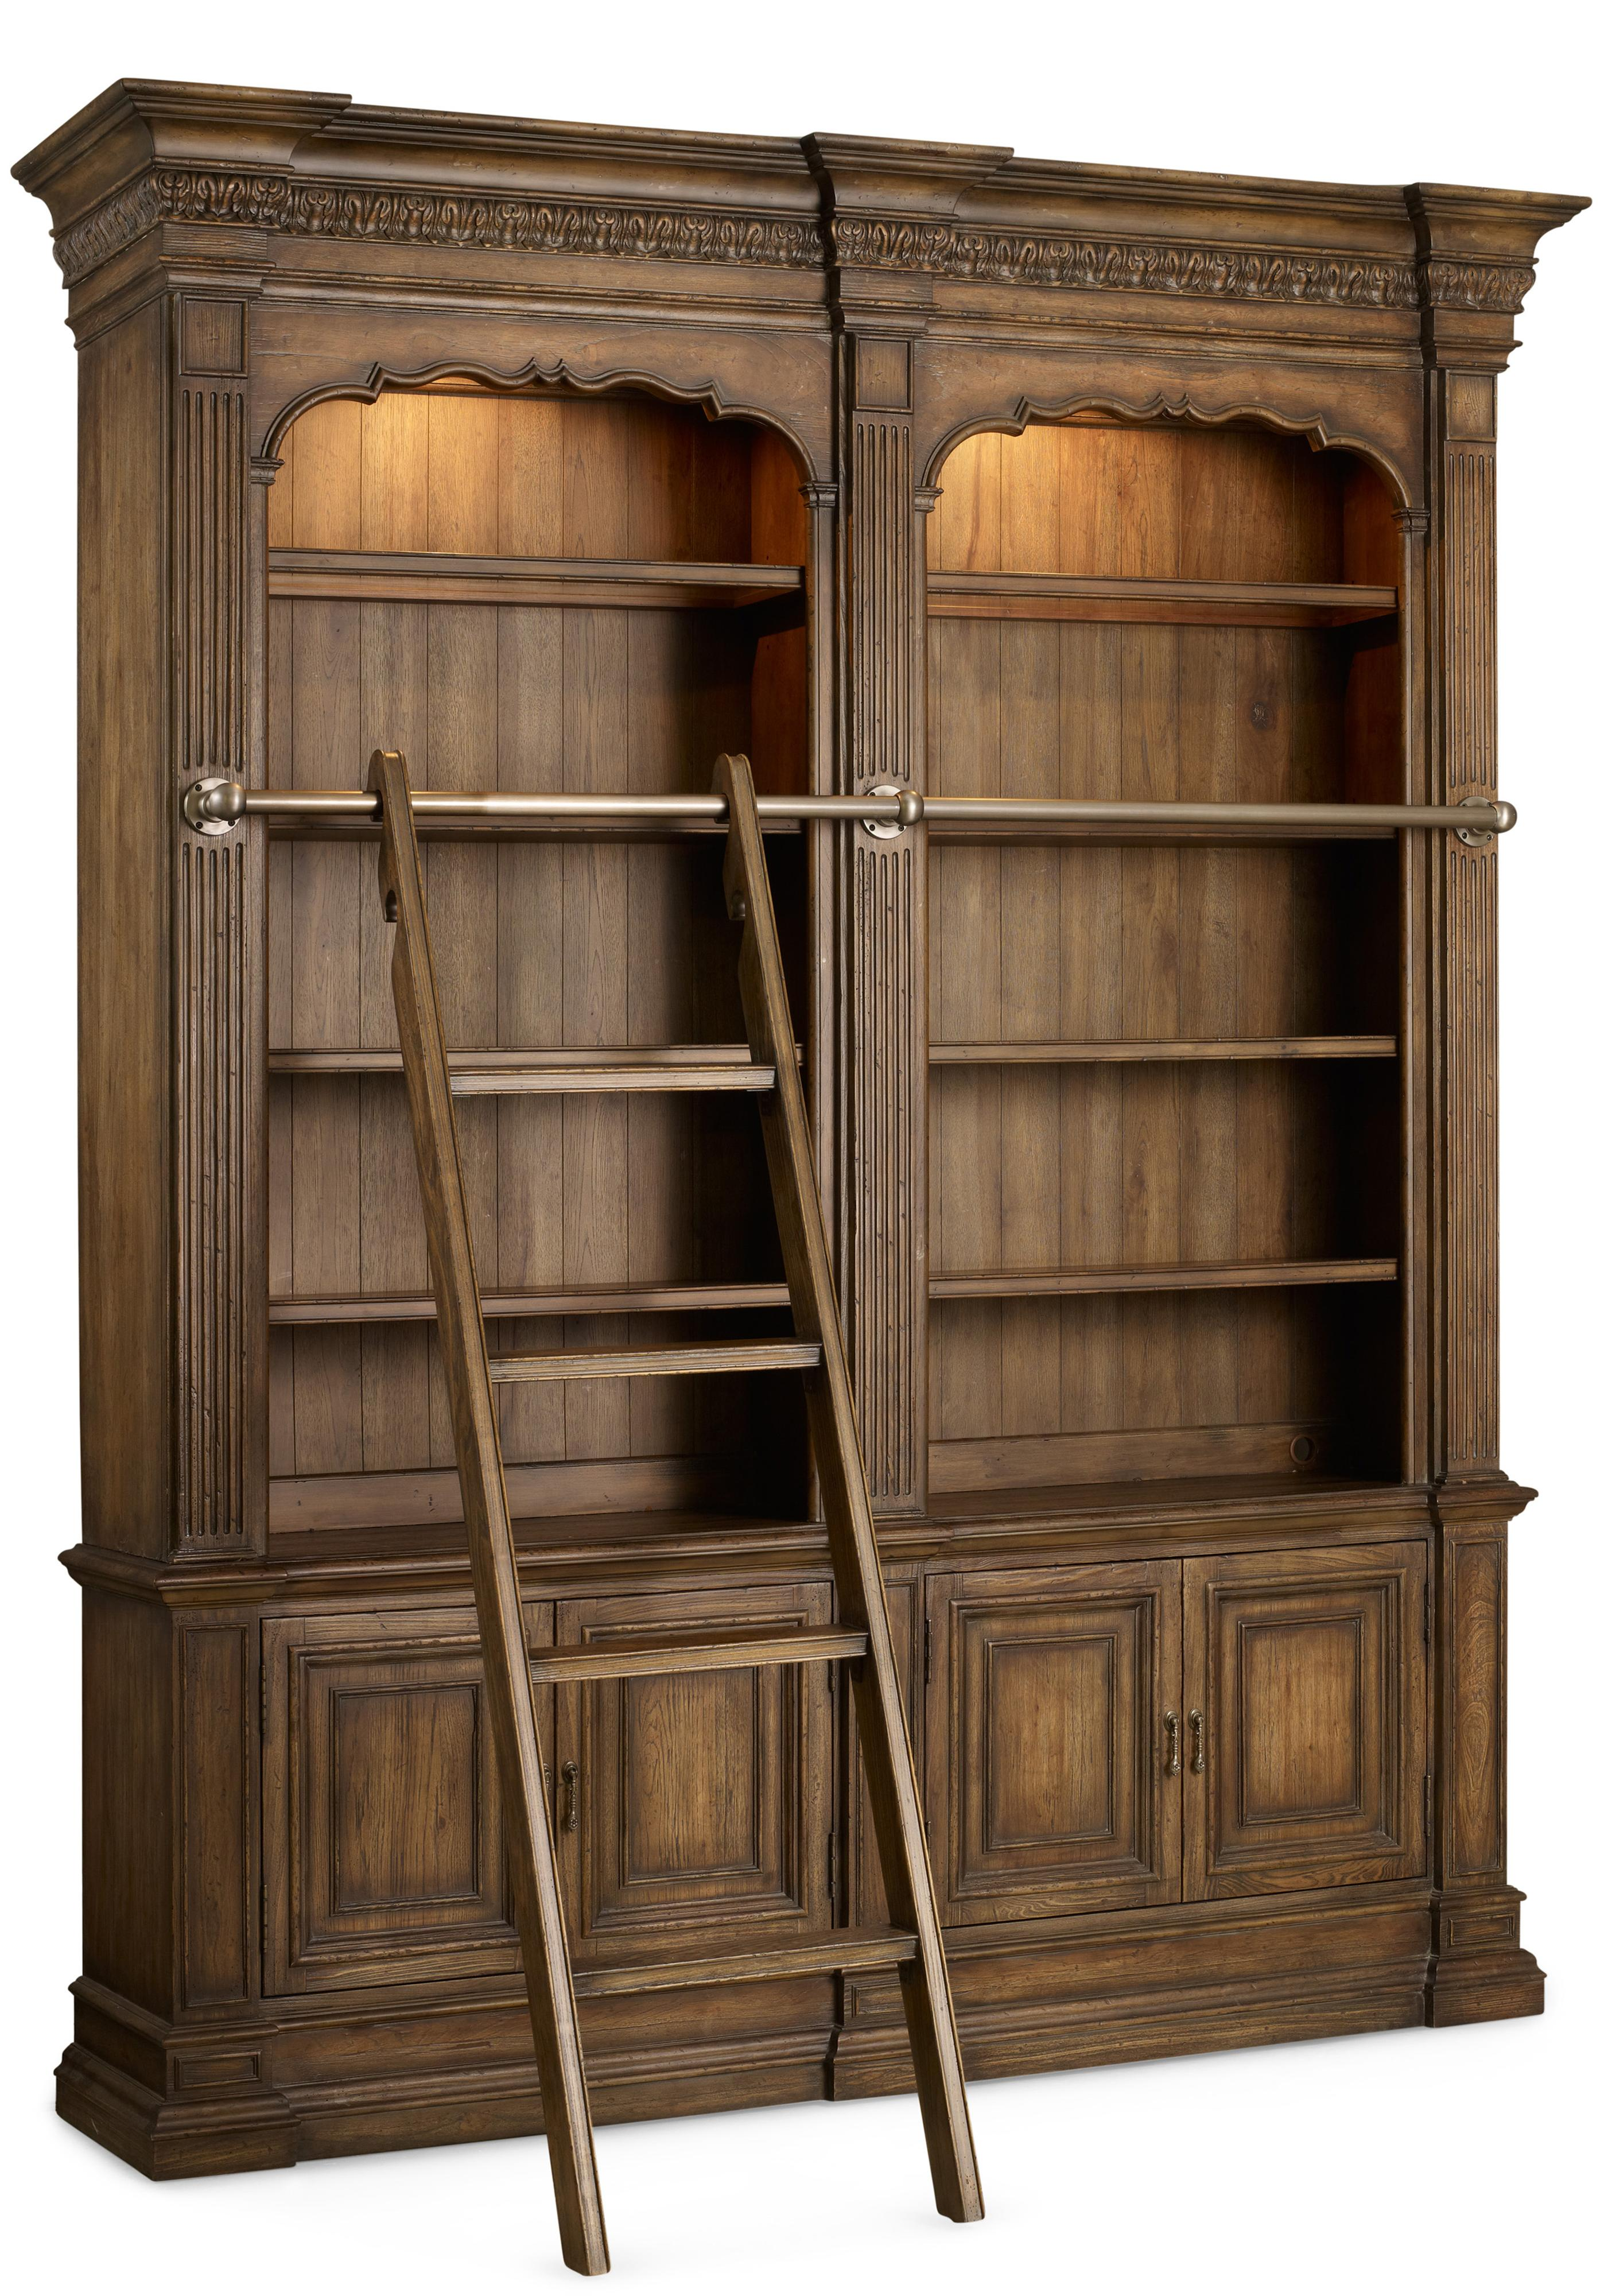 Hooker Furniture Rhapsody Double Bookcase with Ladder and Rail  - Item Number: 5070-10225